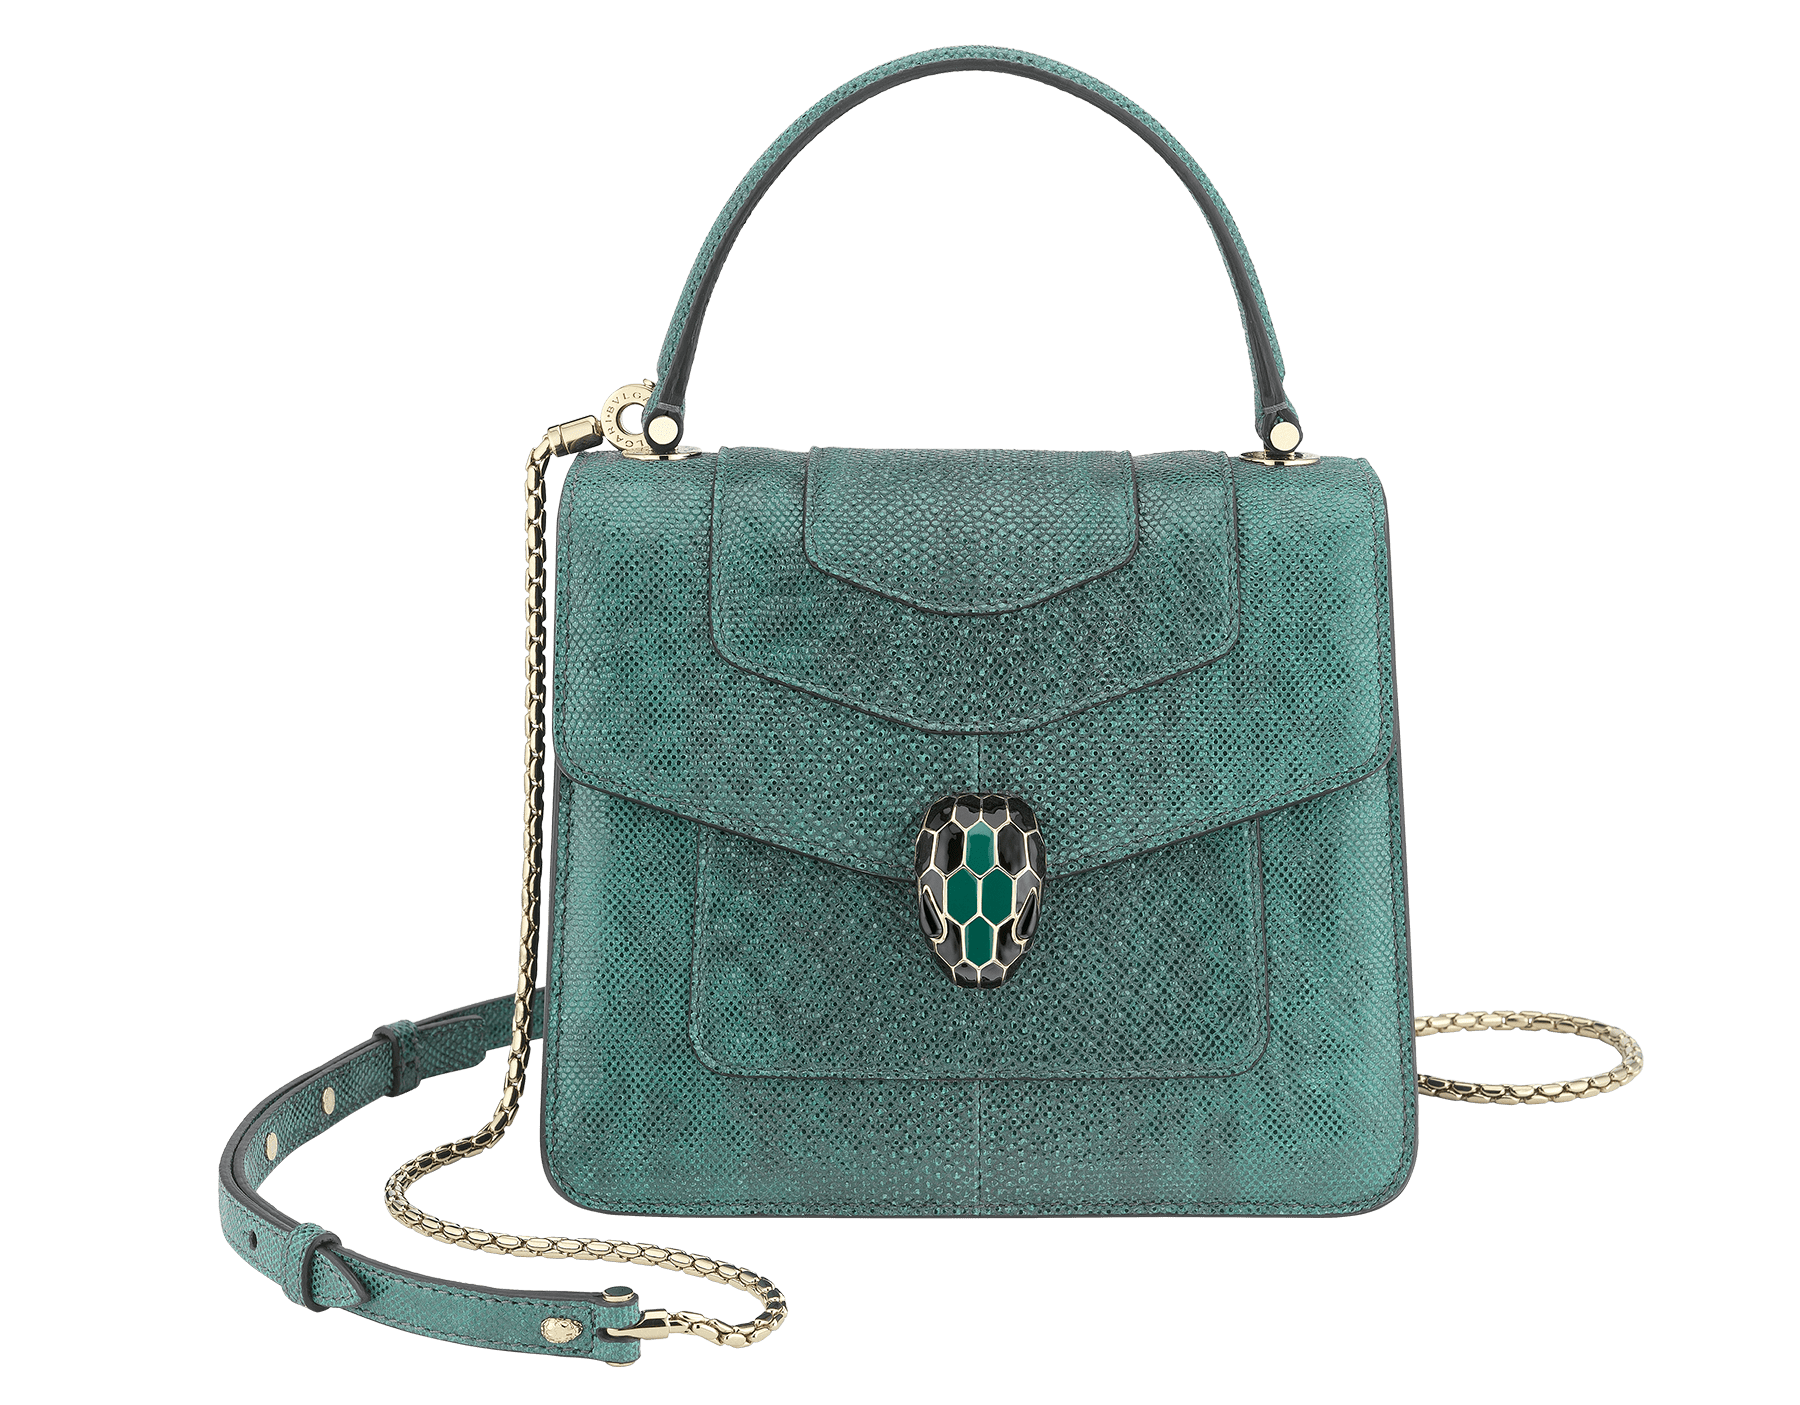 Serpenti Forever crossbody bag in forest emerald metallic karung skin. Snakehead closure in light gold plated brass decorated with shiny black and glitter forest emerald, and black onyx eyes. Special Edition 752-MK image 1